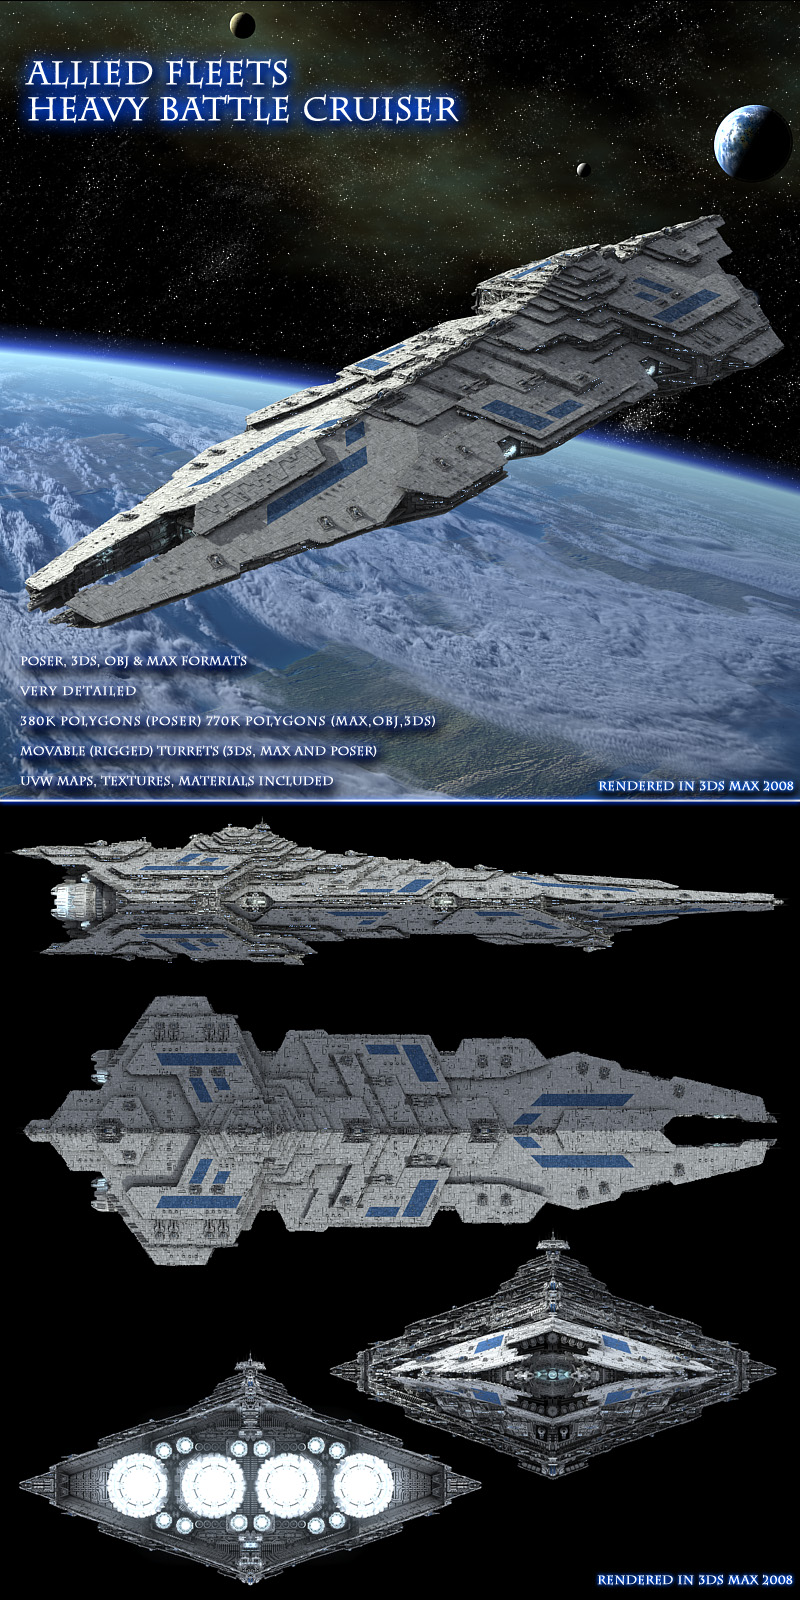 Allied Fleets Heavy Battle Cruiser - Poser,DAZ,OBJ,3DS,MAX